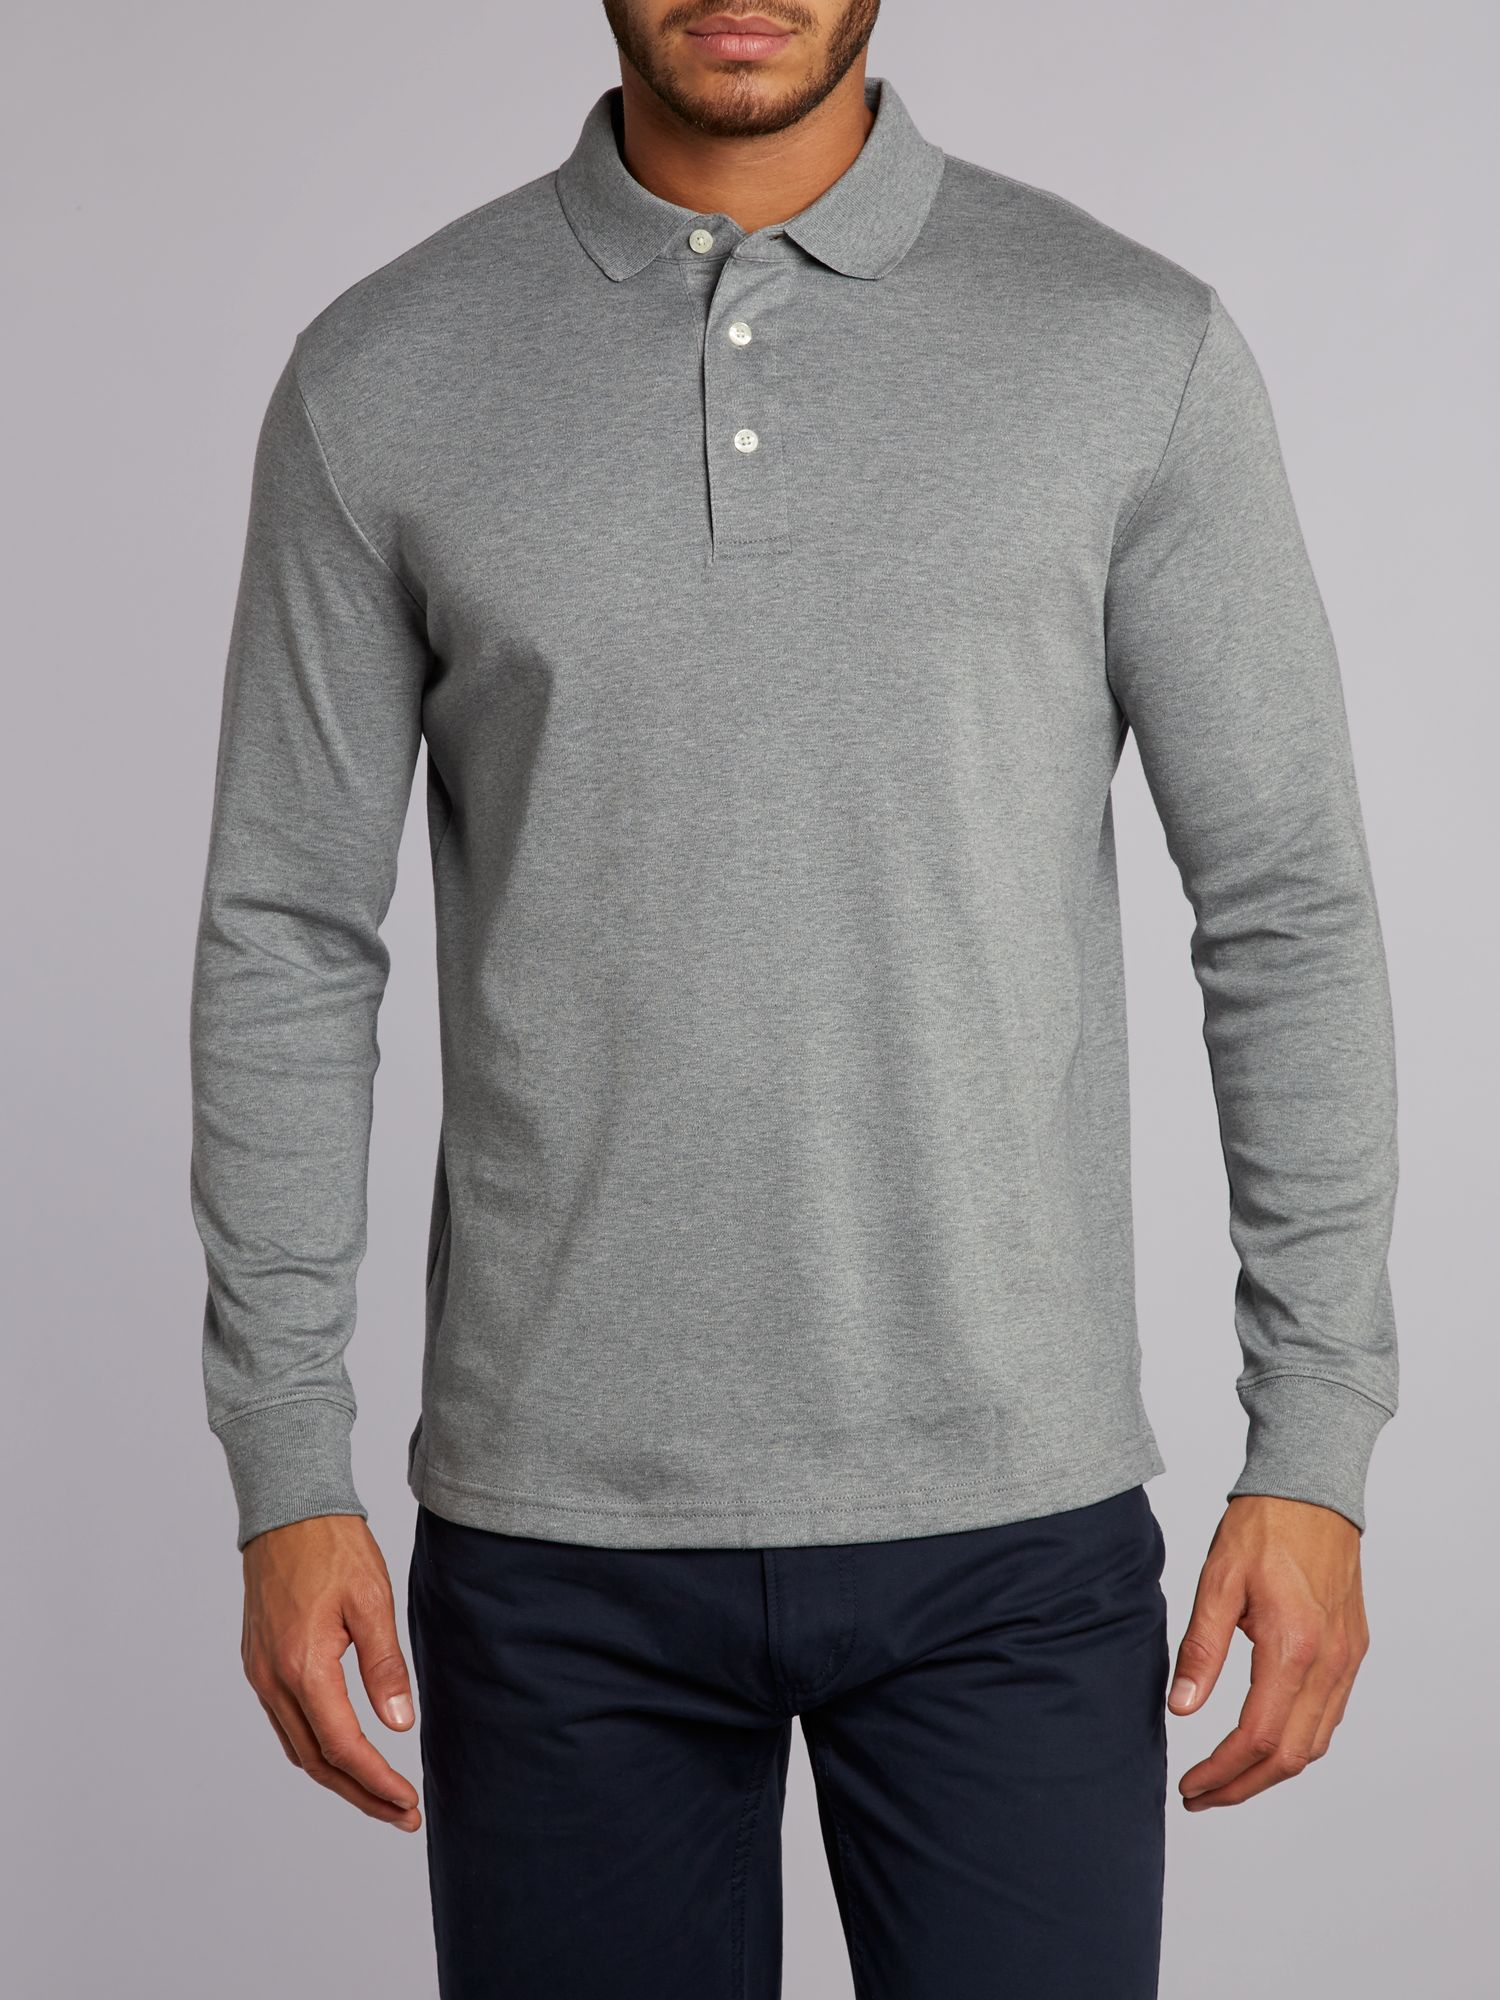 Long sleeve tailored fit supima polo